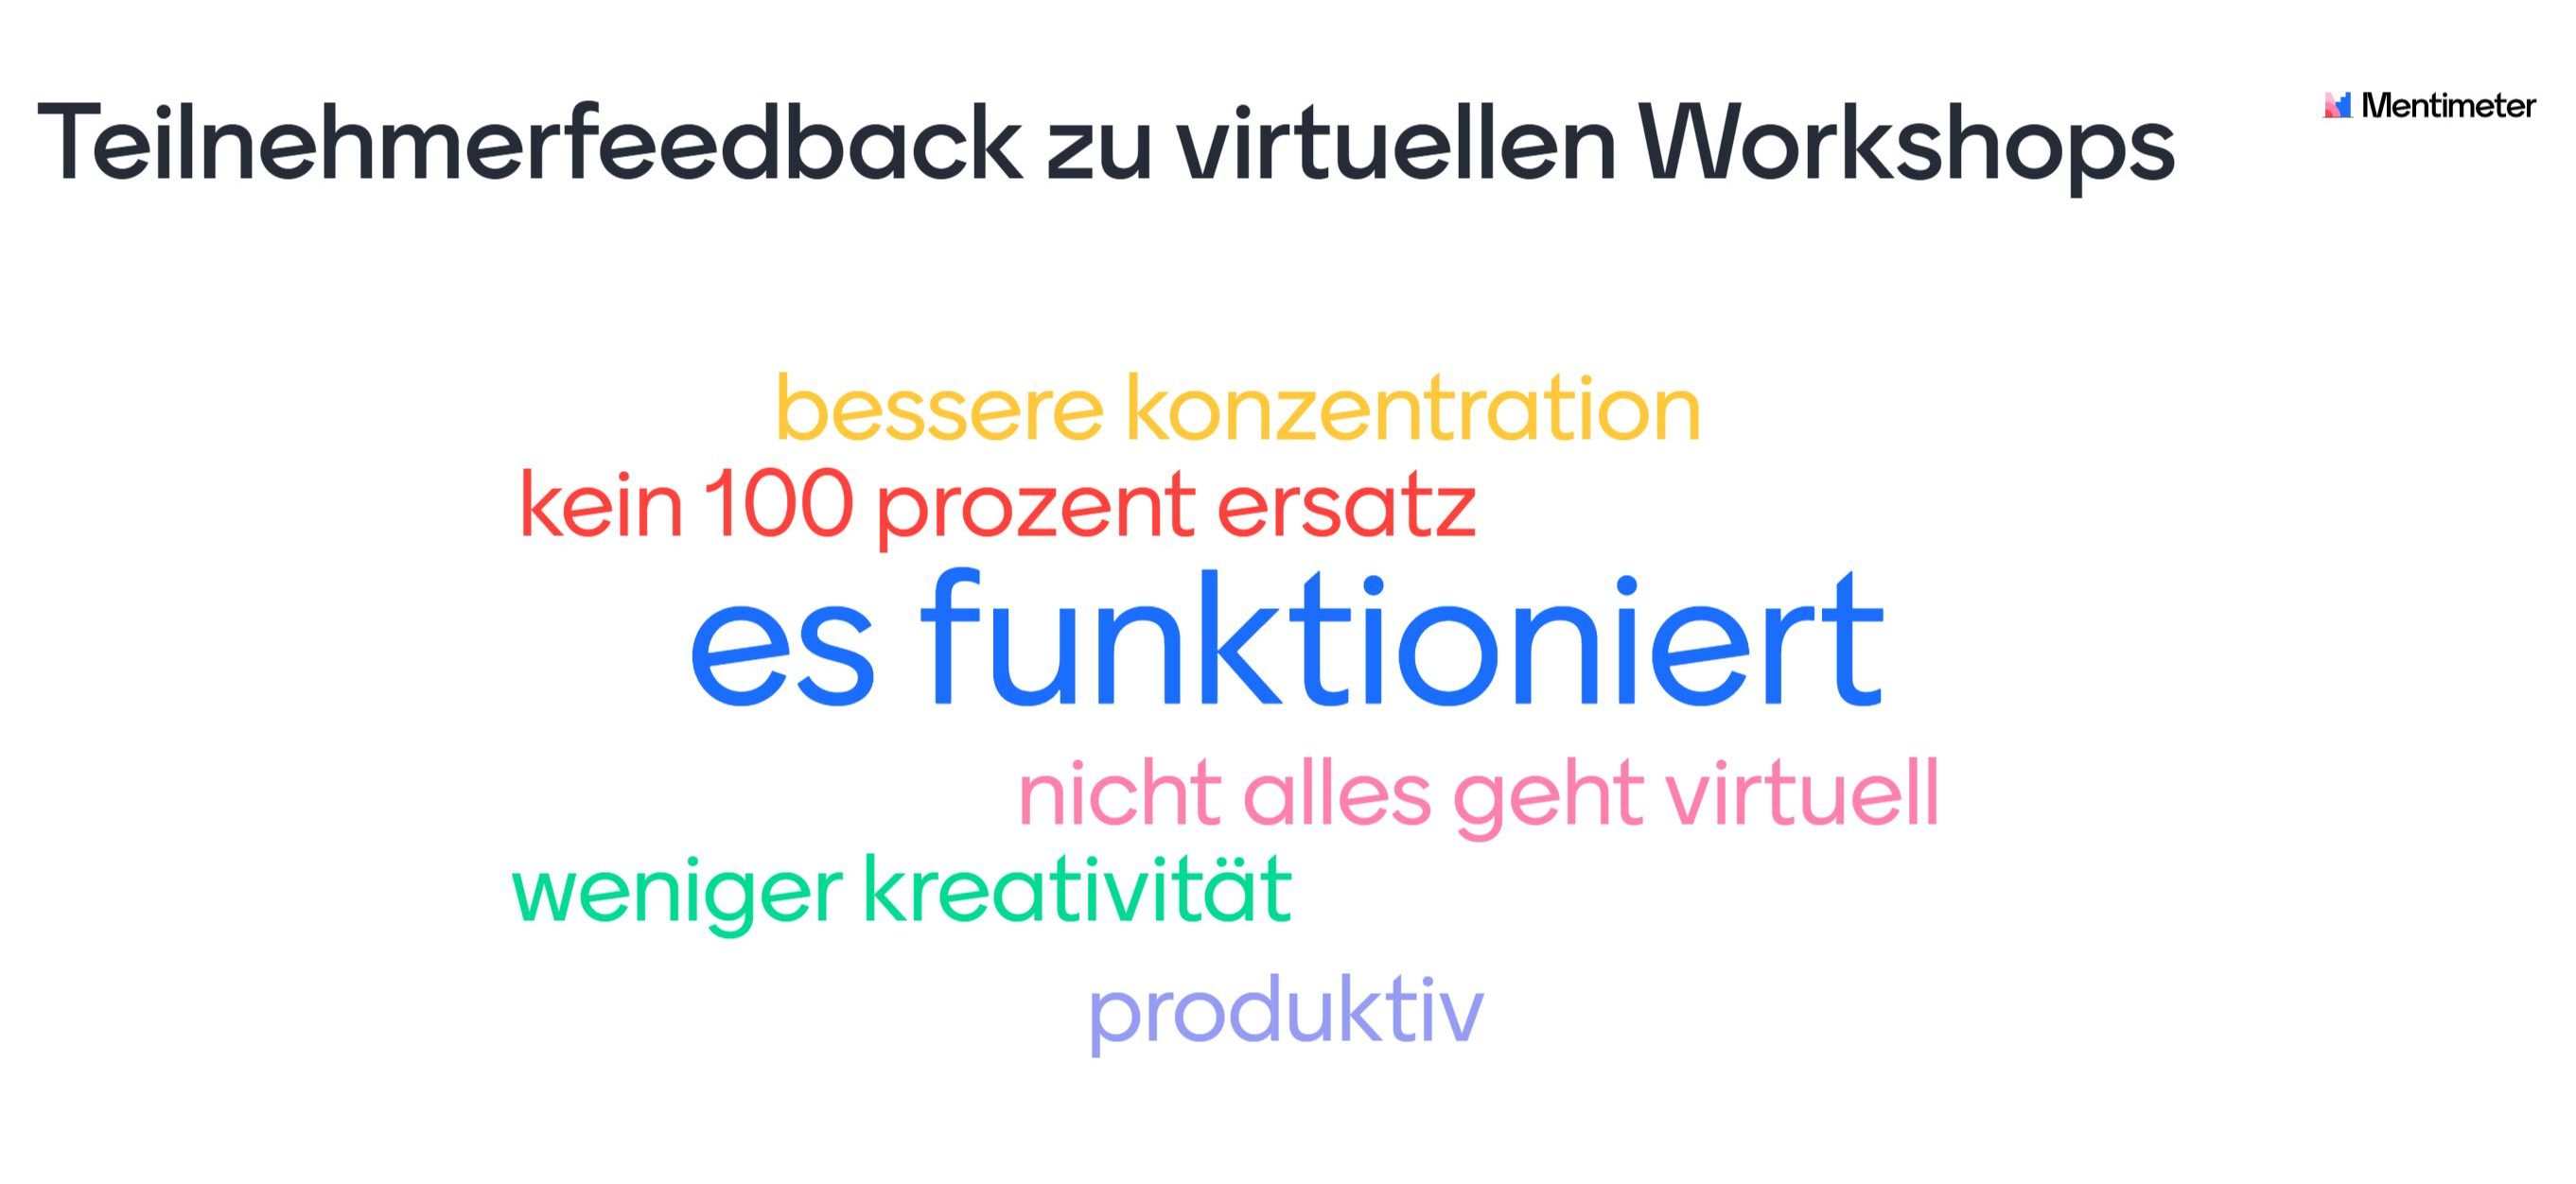 Feedback zu virtuellen Workshops